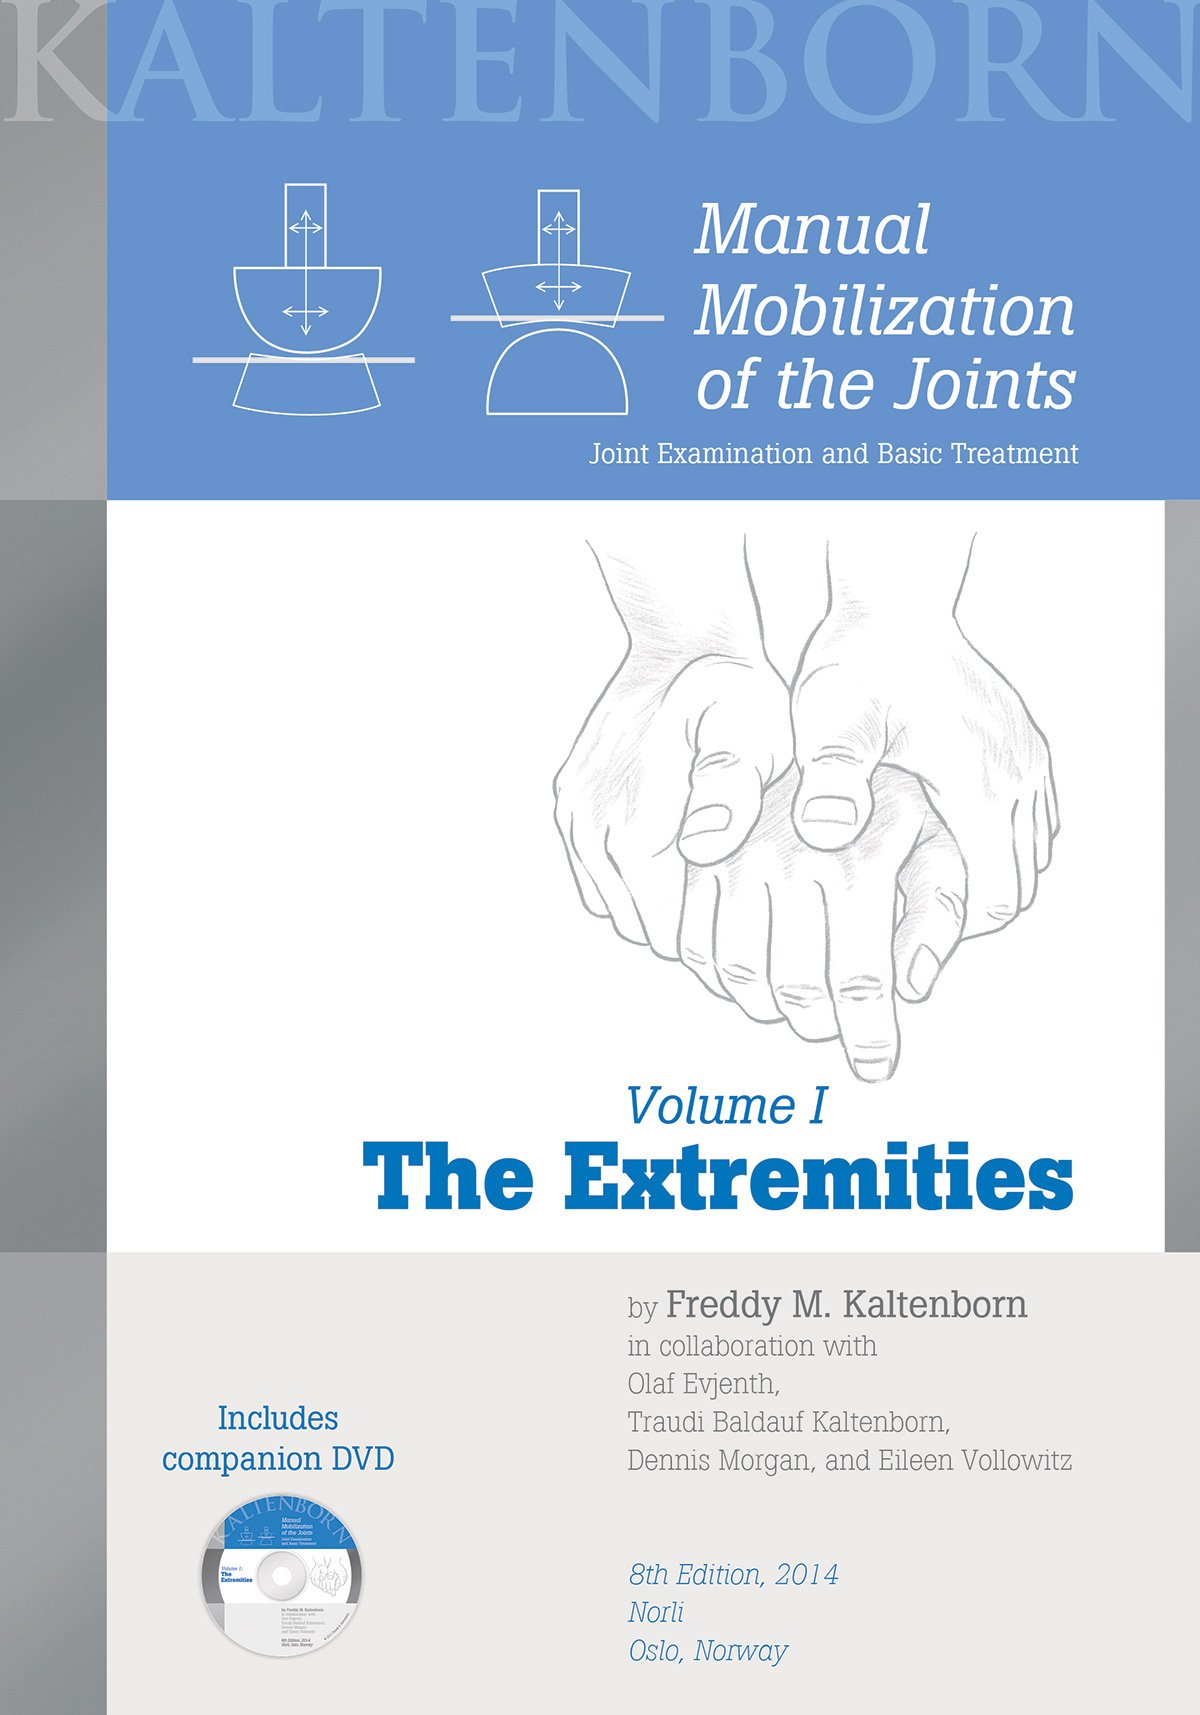 Manual Mobilization of the Joints - Vol. 1: The Extremities, 8th Edition (Book & DVD)